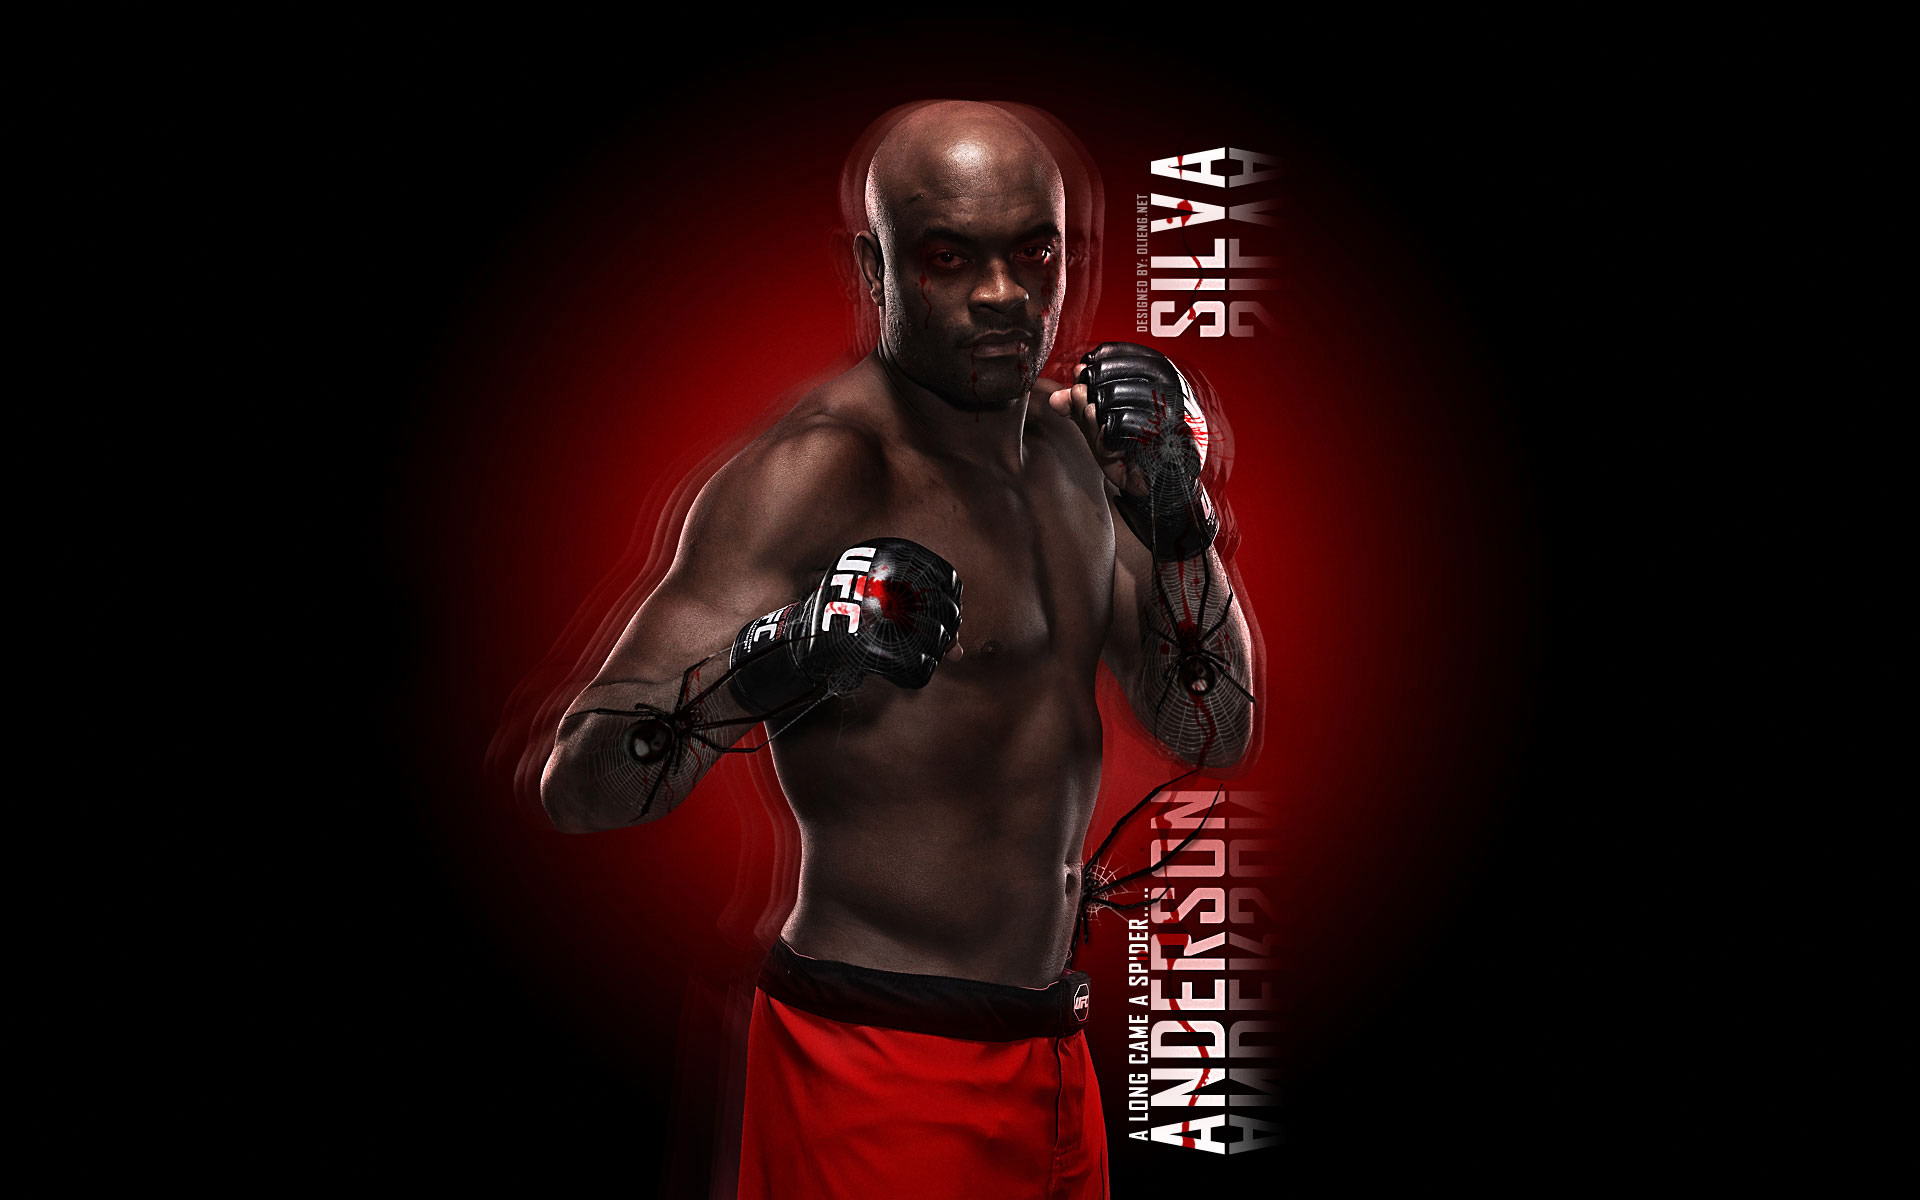 Anderson Silva Wallpaper Photos Image 1920x1200